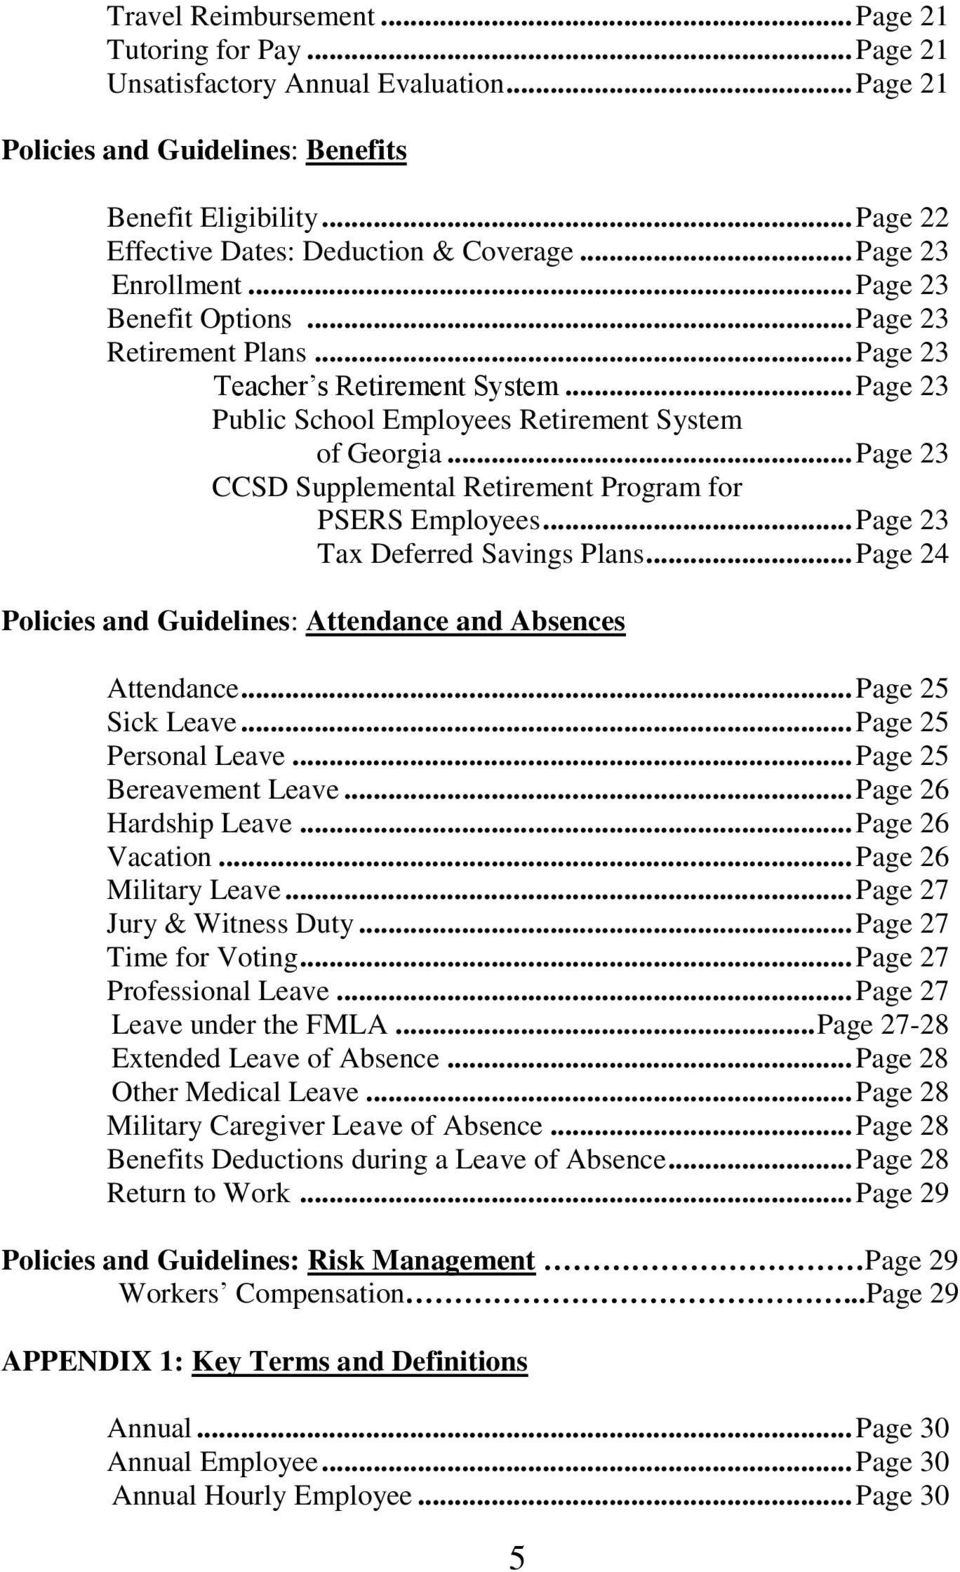 cobb county school district employee handbook pdf page 23 public school employees retirement system of page 23